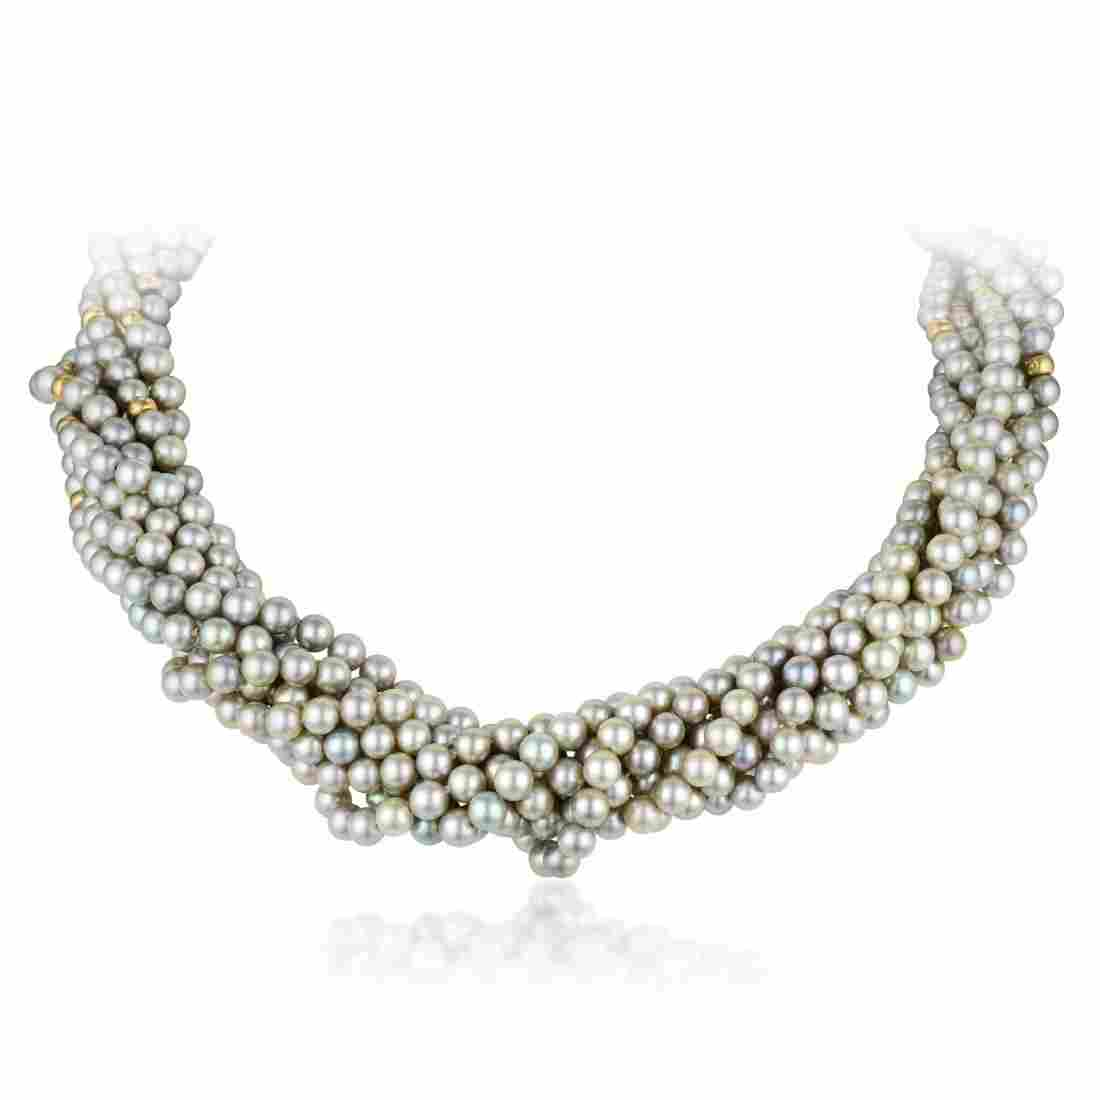 A Gray Cultured Pearl Bead Necklace